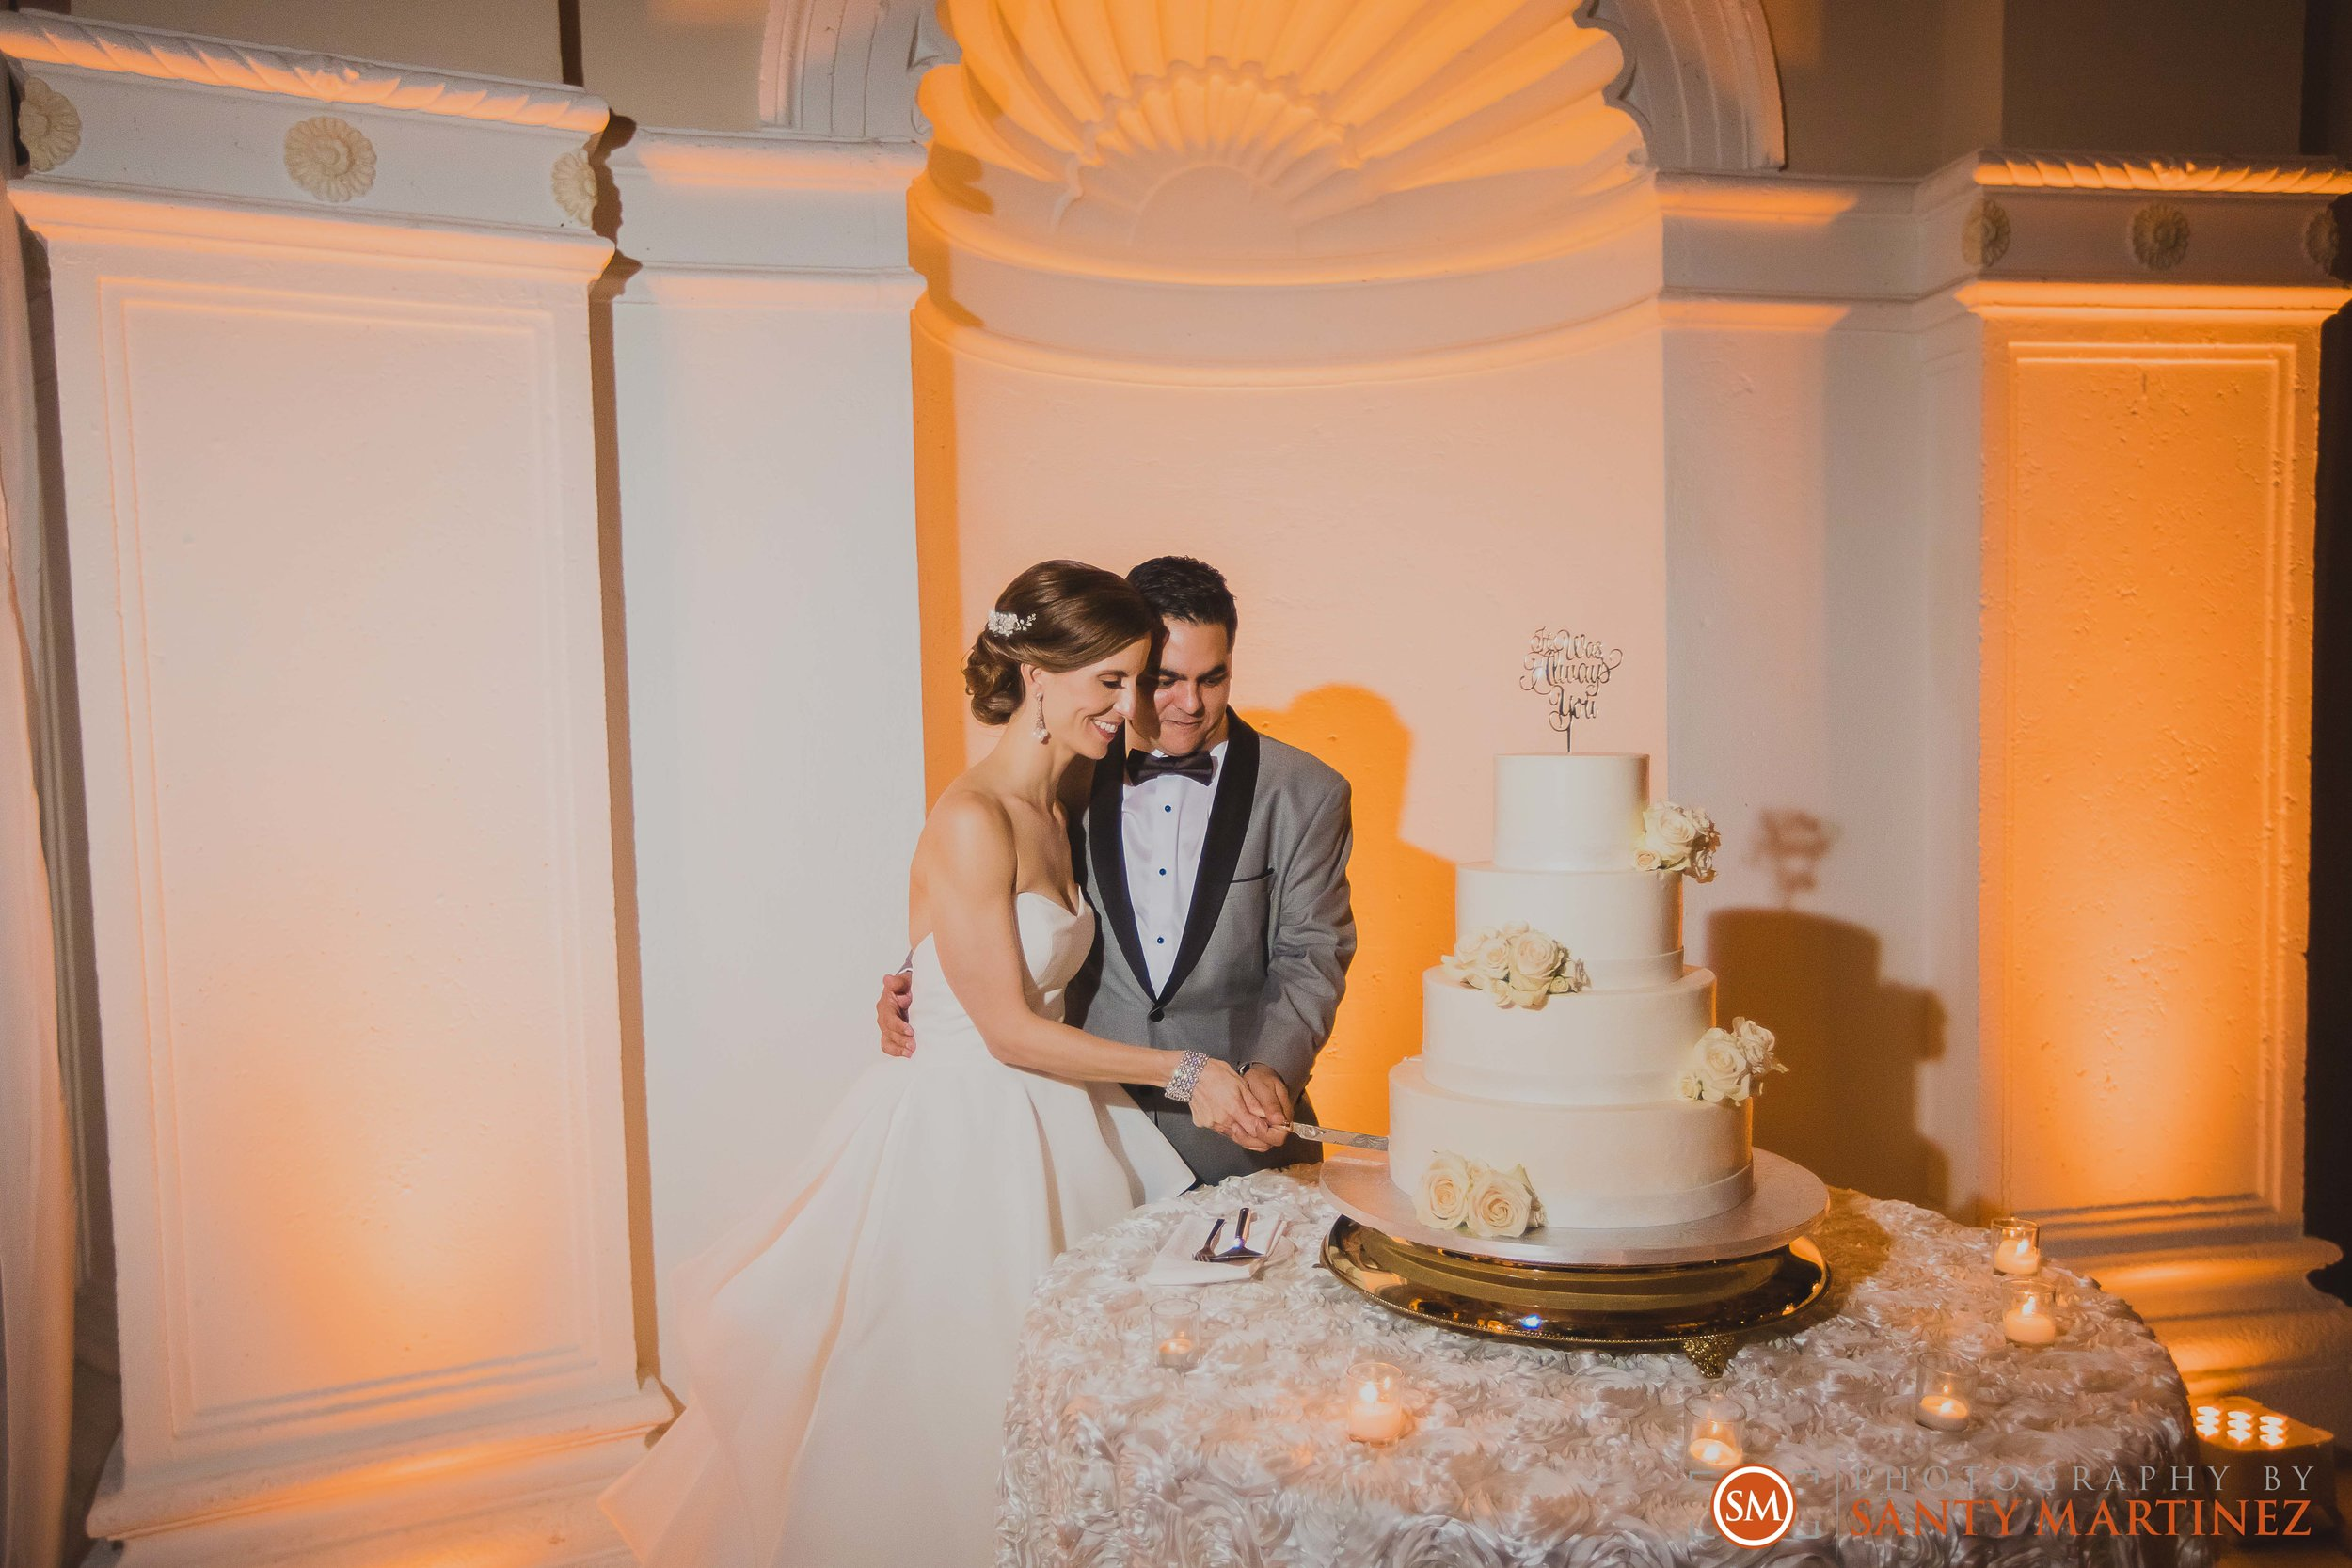 Wedding - Hotel Colonnade Coral Gables - Santy Martinez Photography-25.jpg